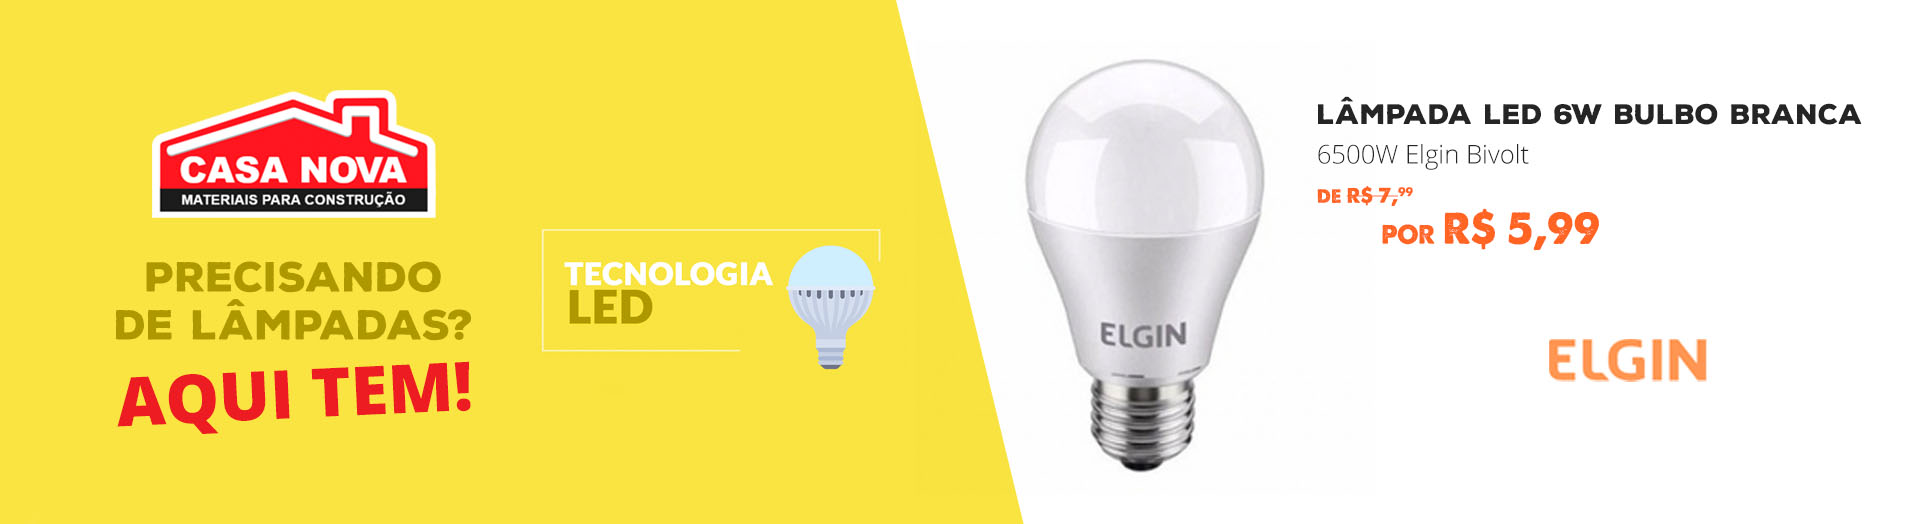 Full Banner - Lampada Led Elgin